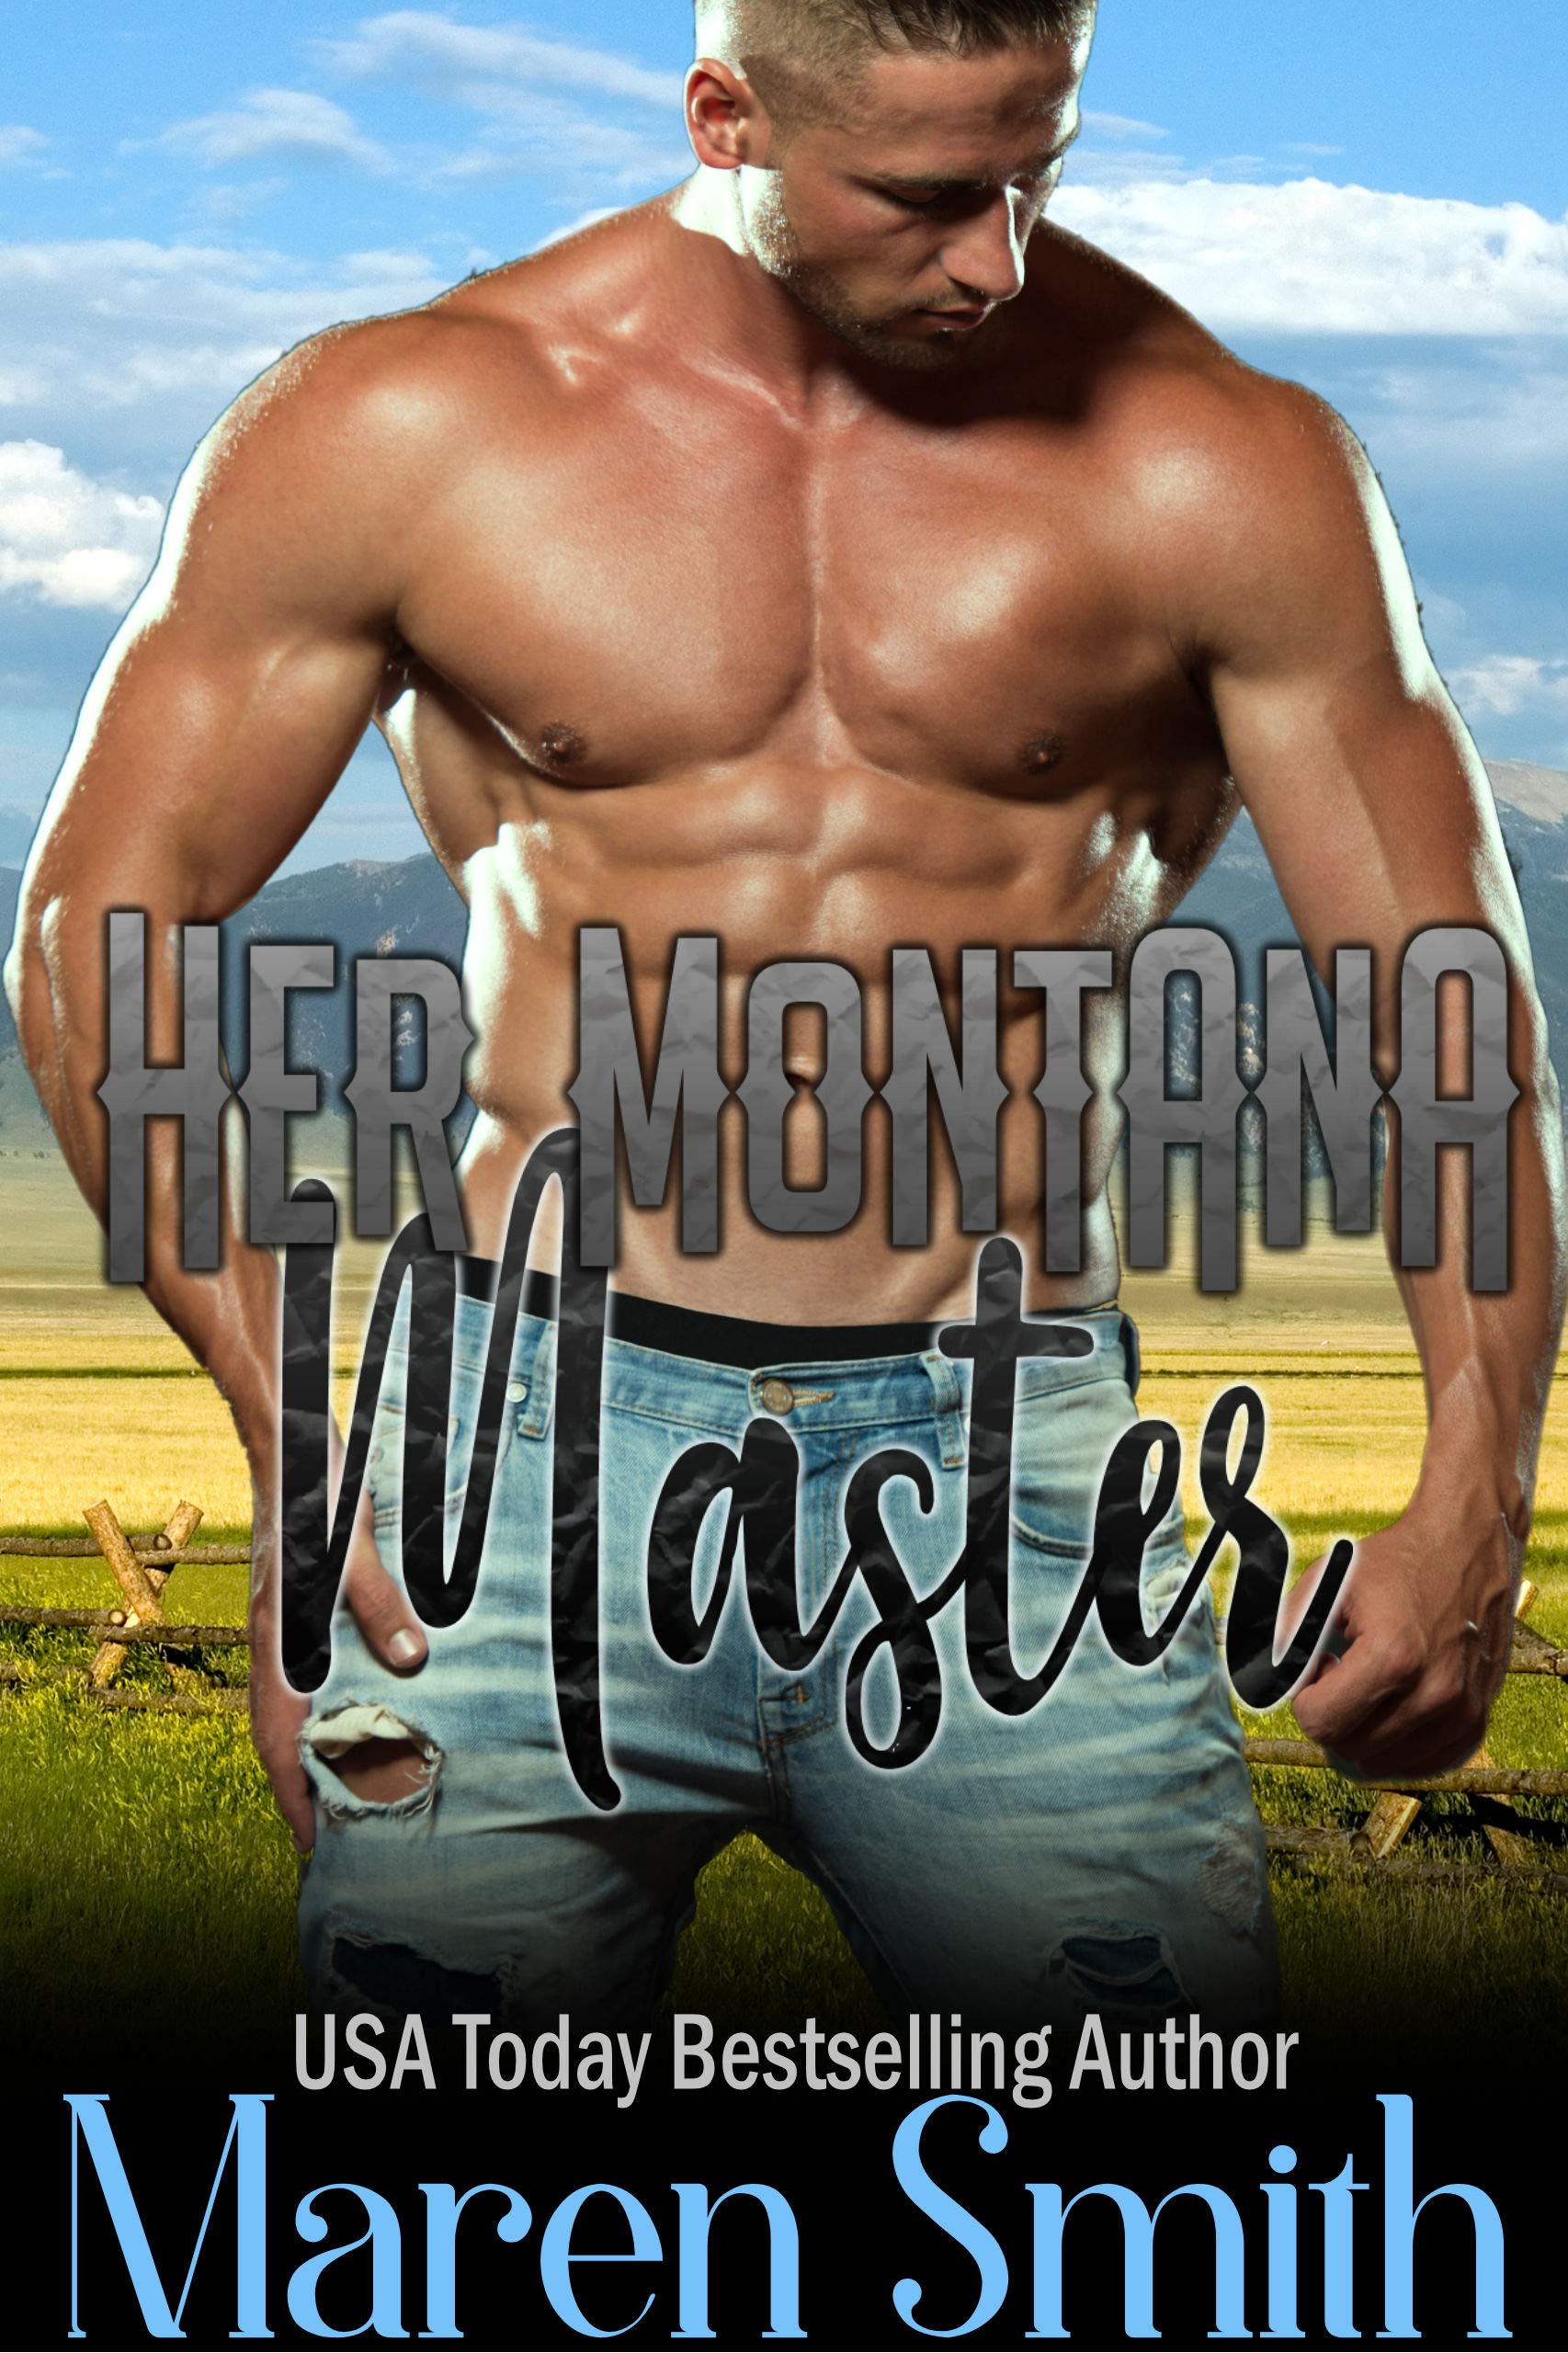 Download Her Montana Master: An Alpha Male BDSM Contemporary Western Romance (Stateside Doms Book 1) by Maren Smith